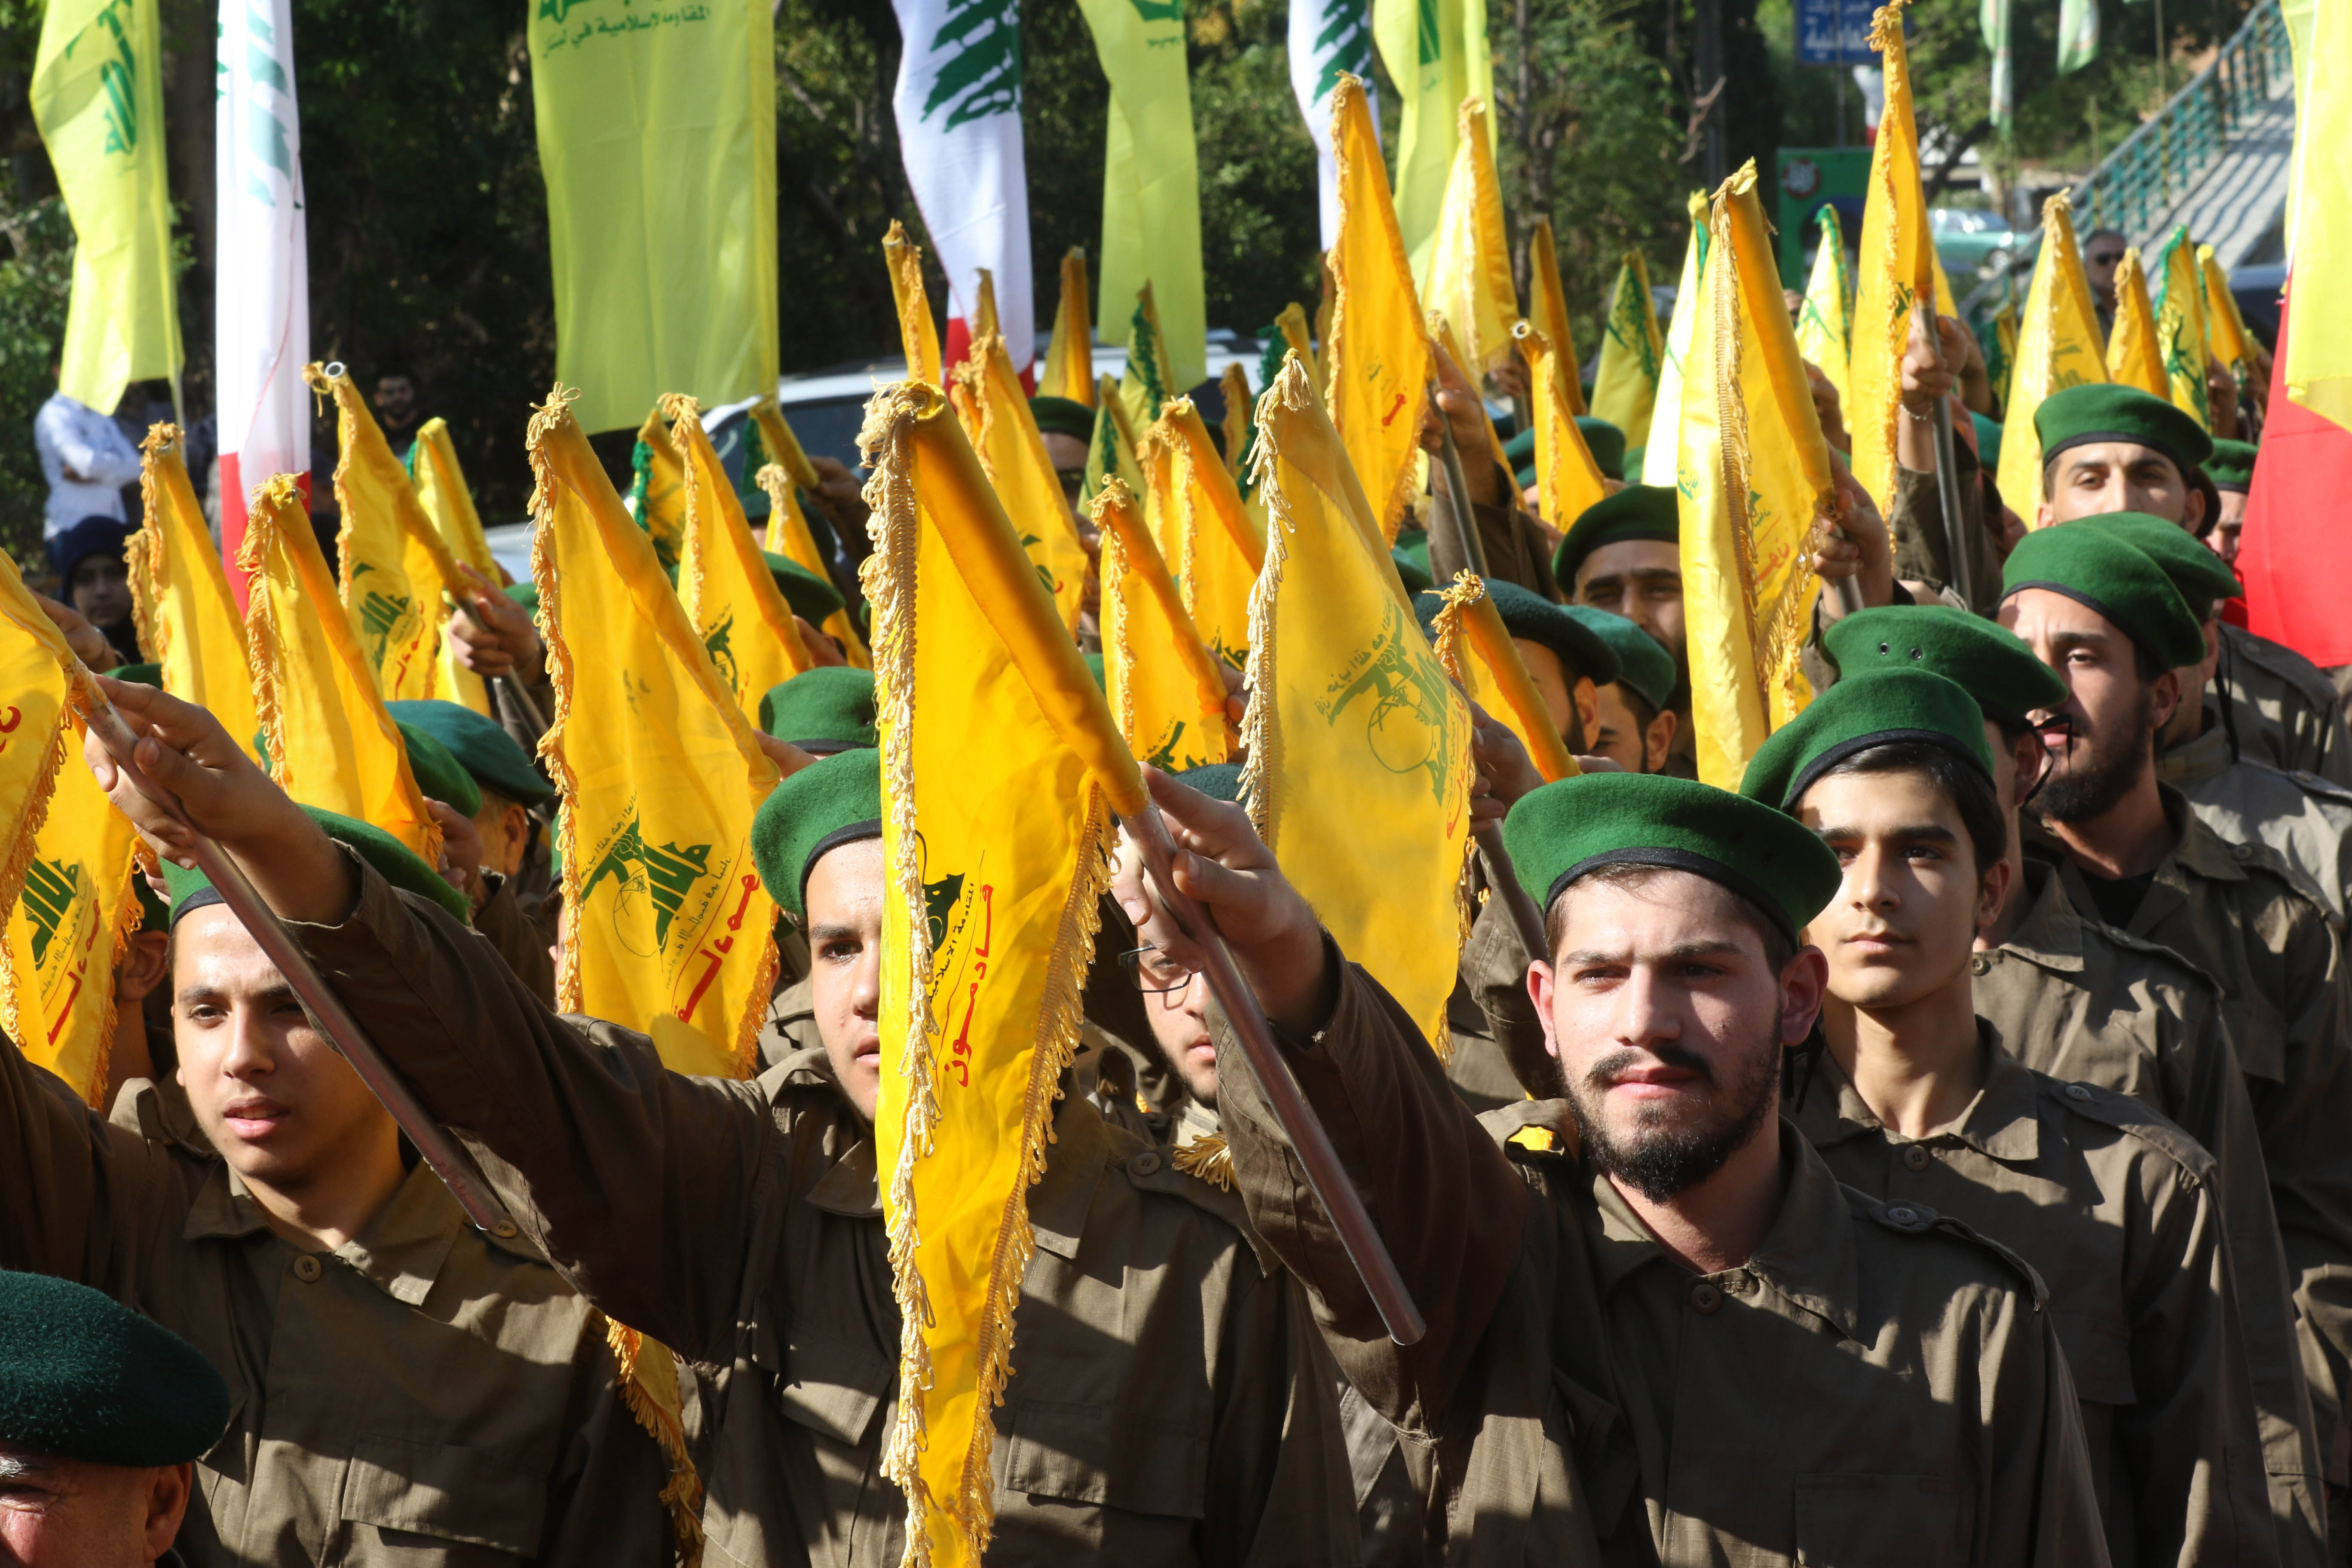 """Lebanon's Hezbollah prepares for the """"moment of the collapse of the state"""""""